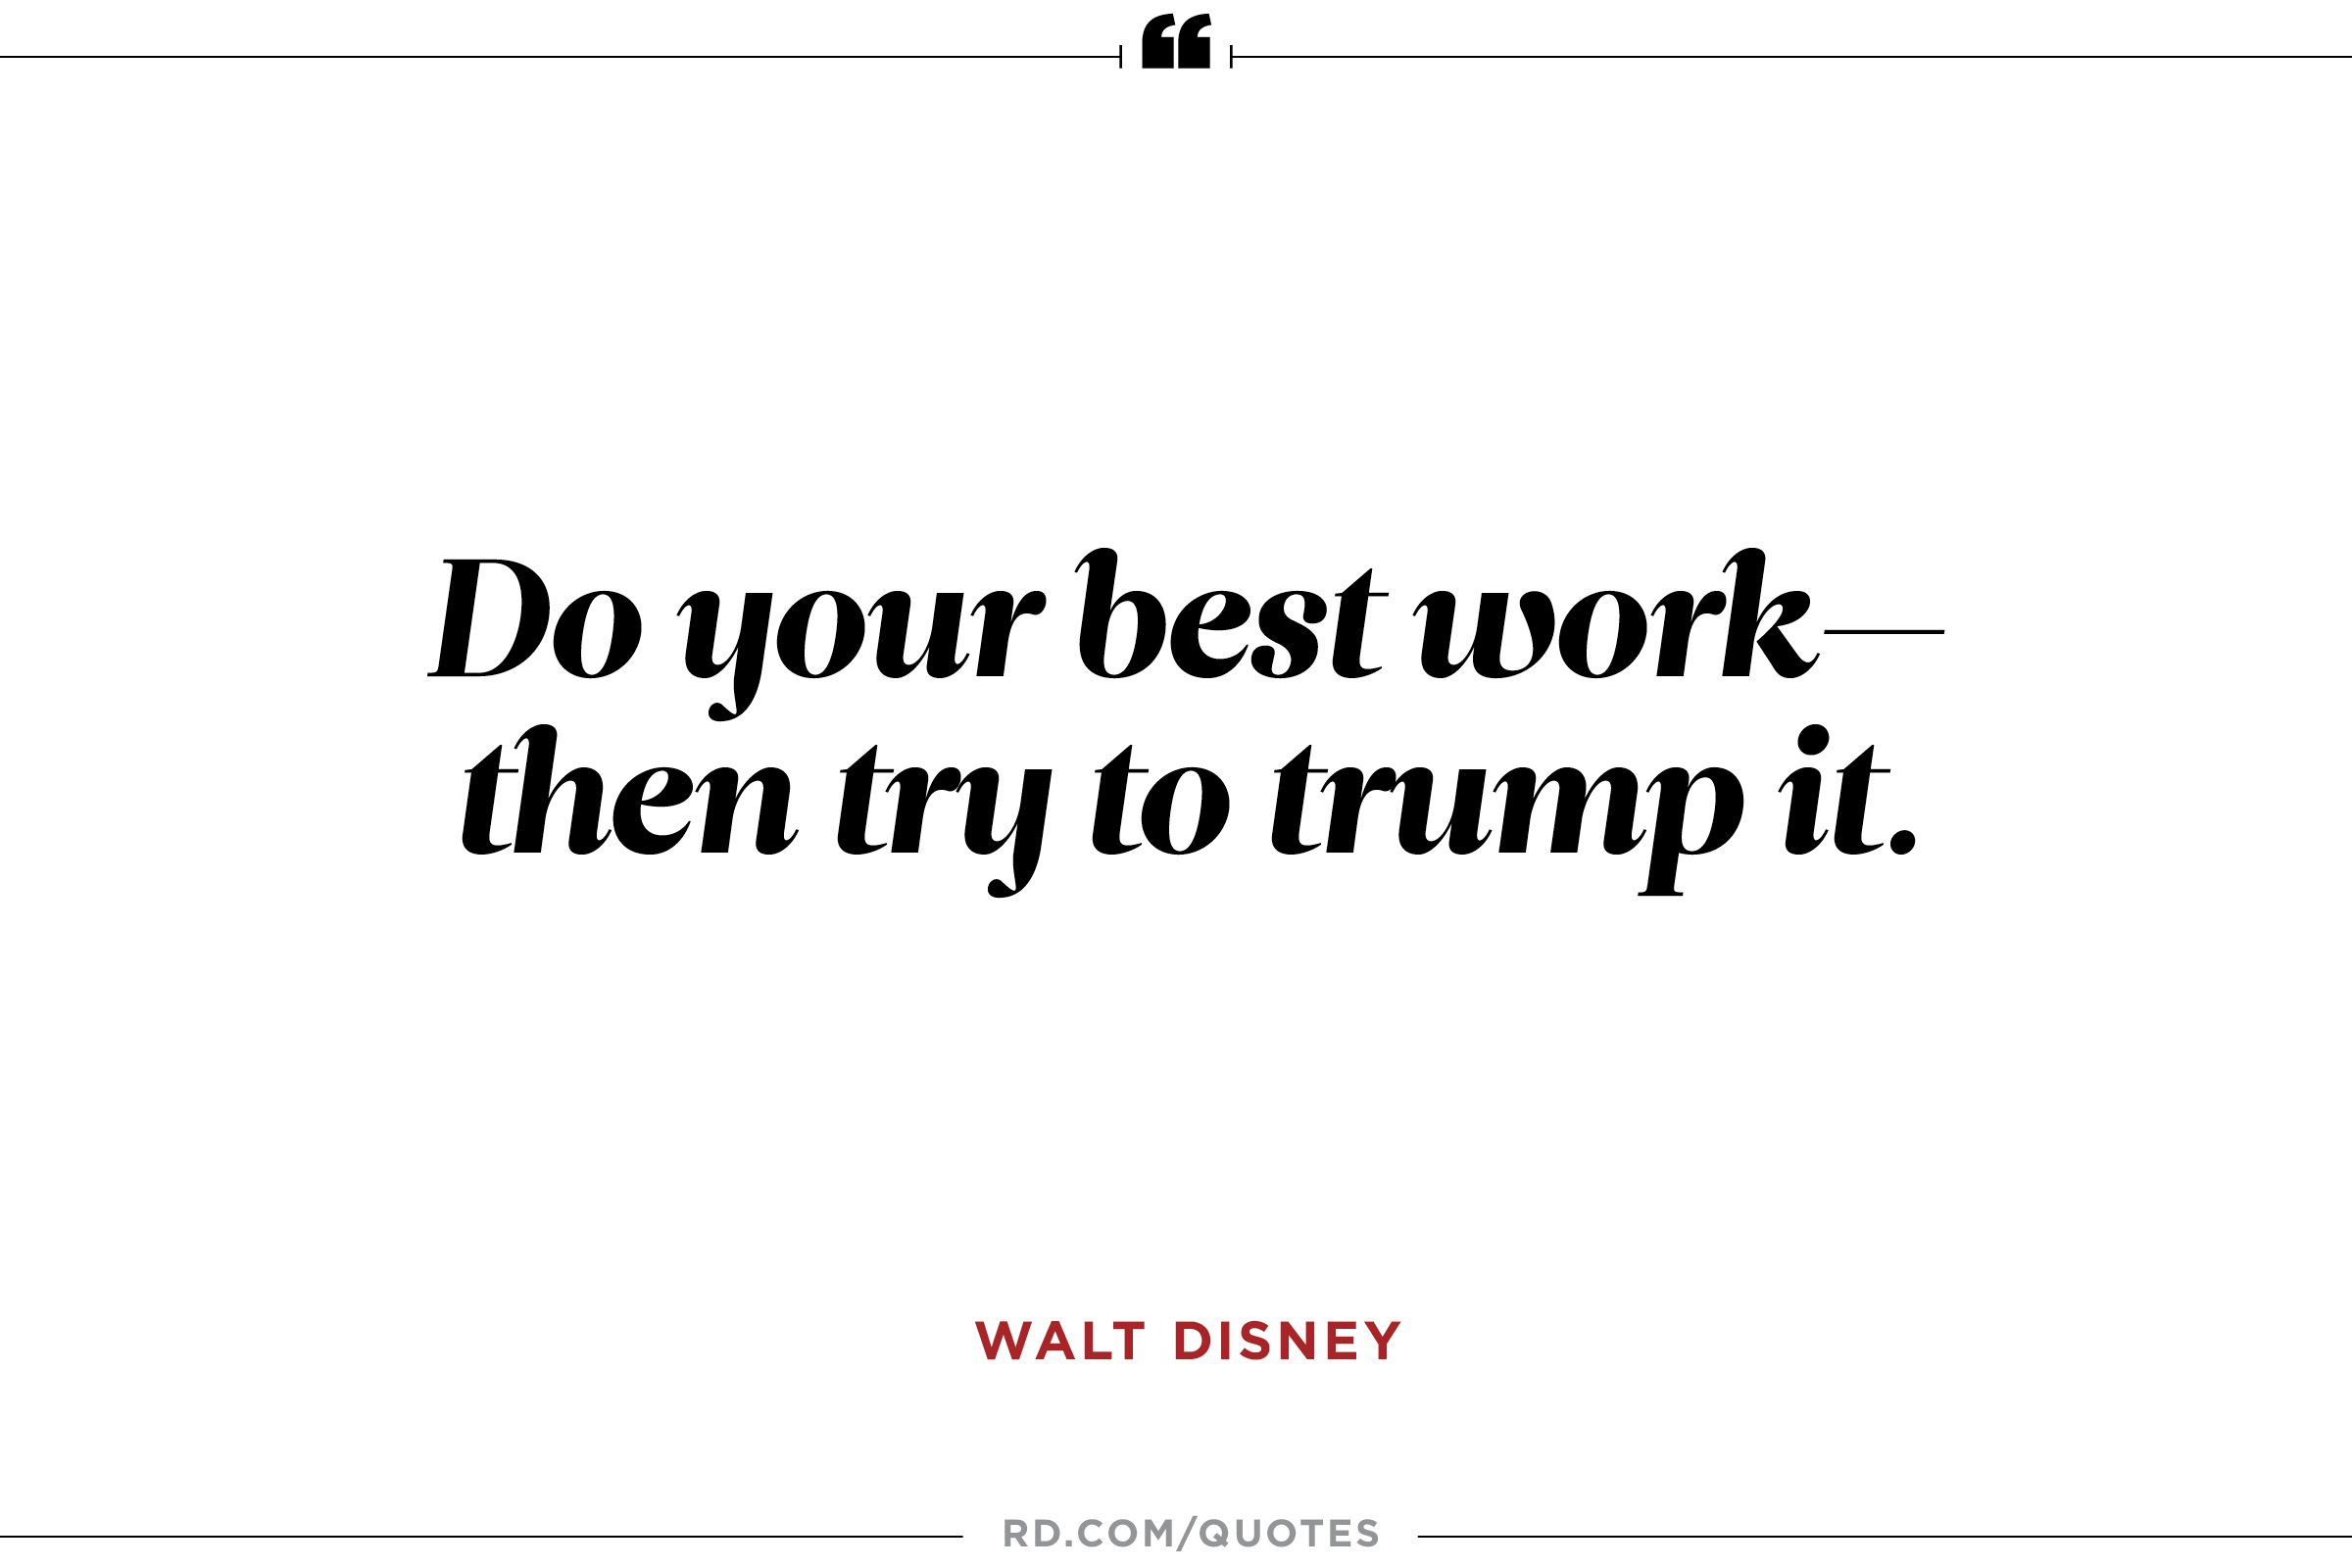 Prhsx Quote Walt Disney Quote Magnificent 8 Walt Disney Quotes That Are